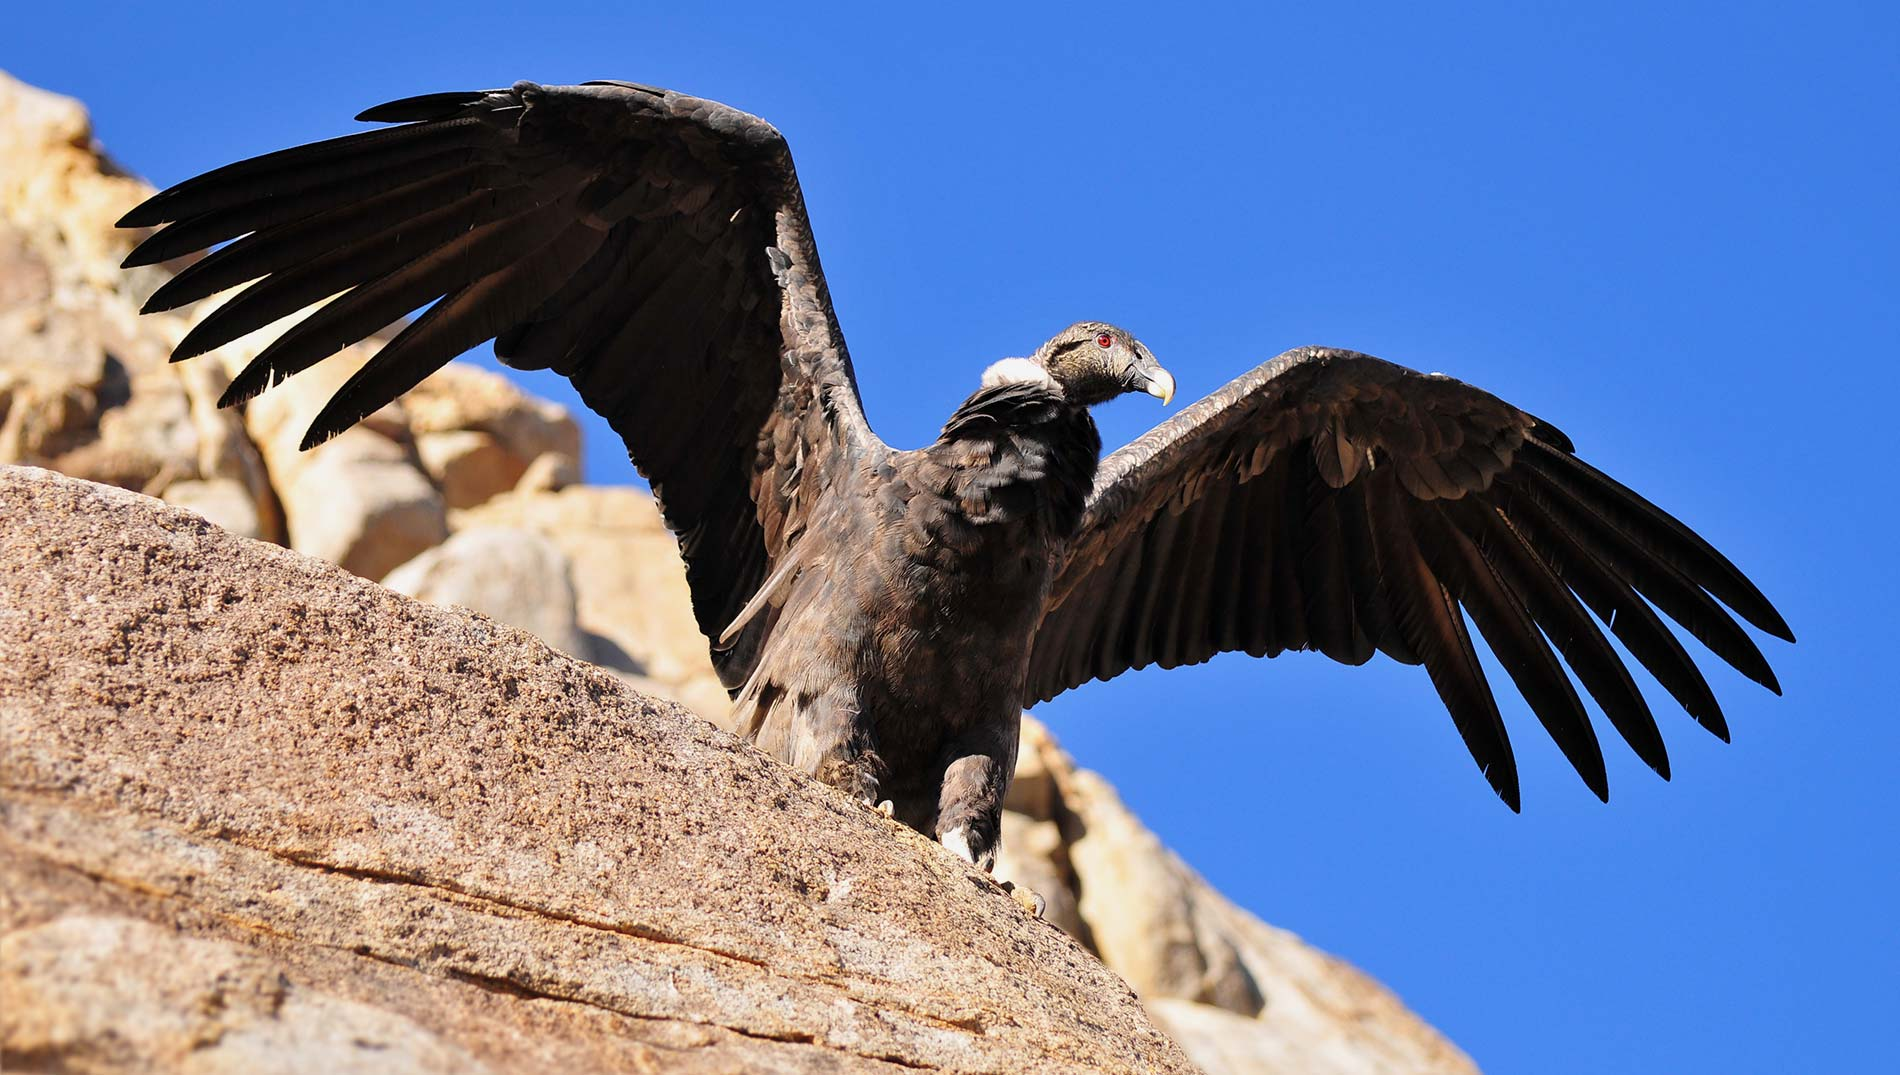 The condor of Las Arenas Valley